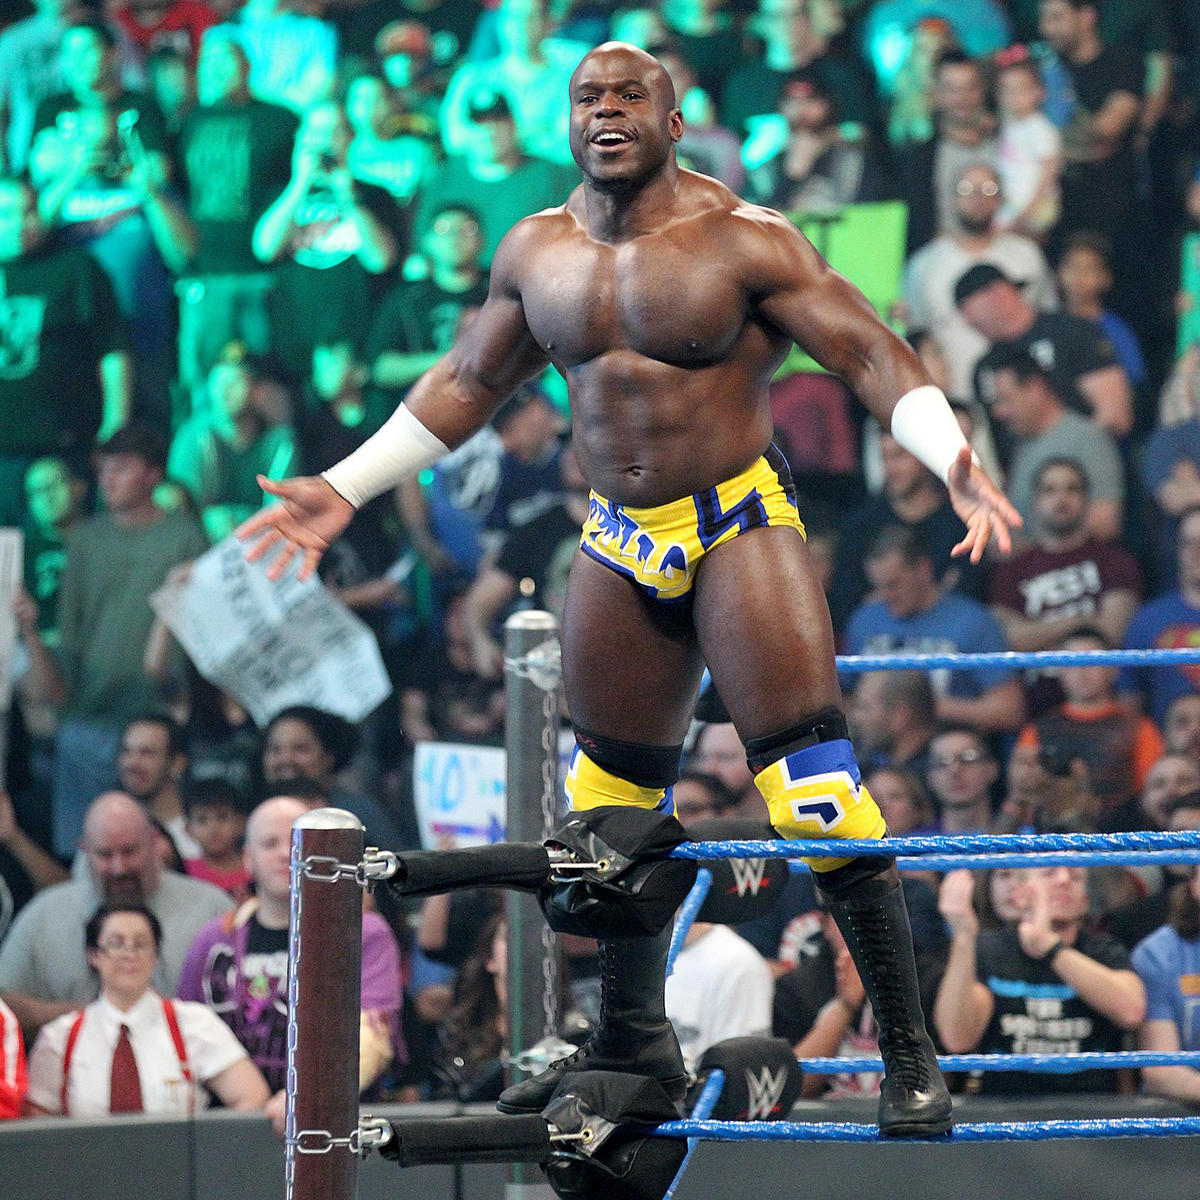 Image result for apollo crews www.wwe.com